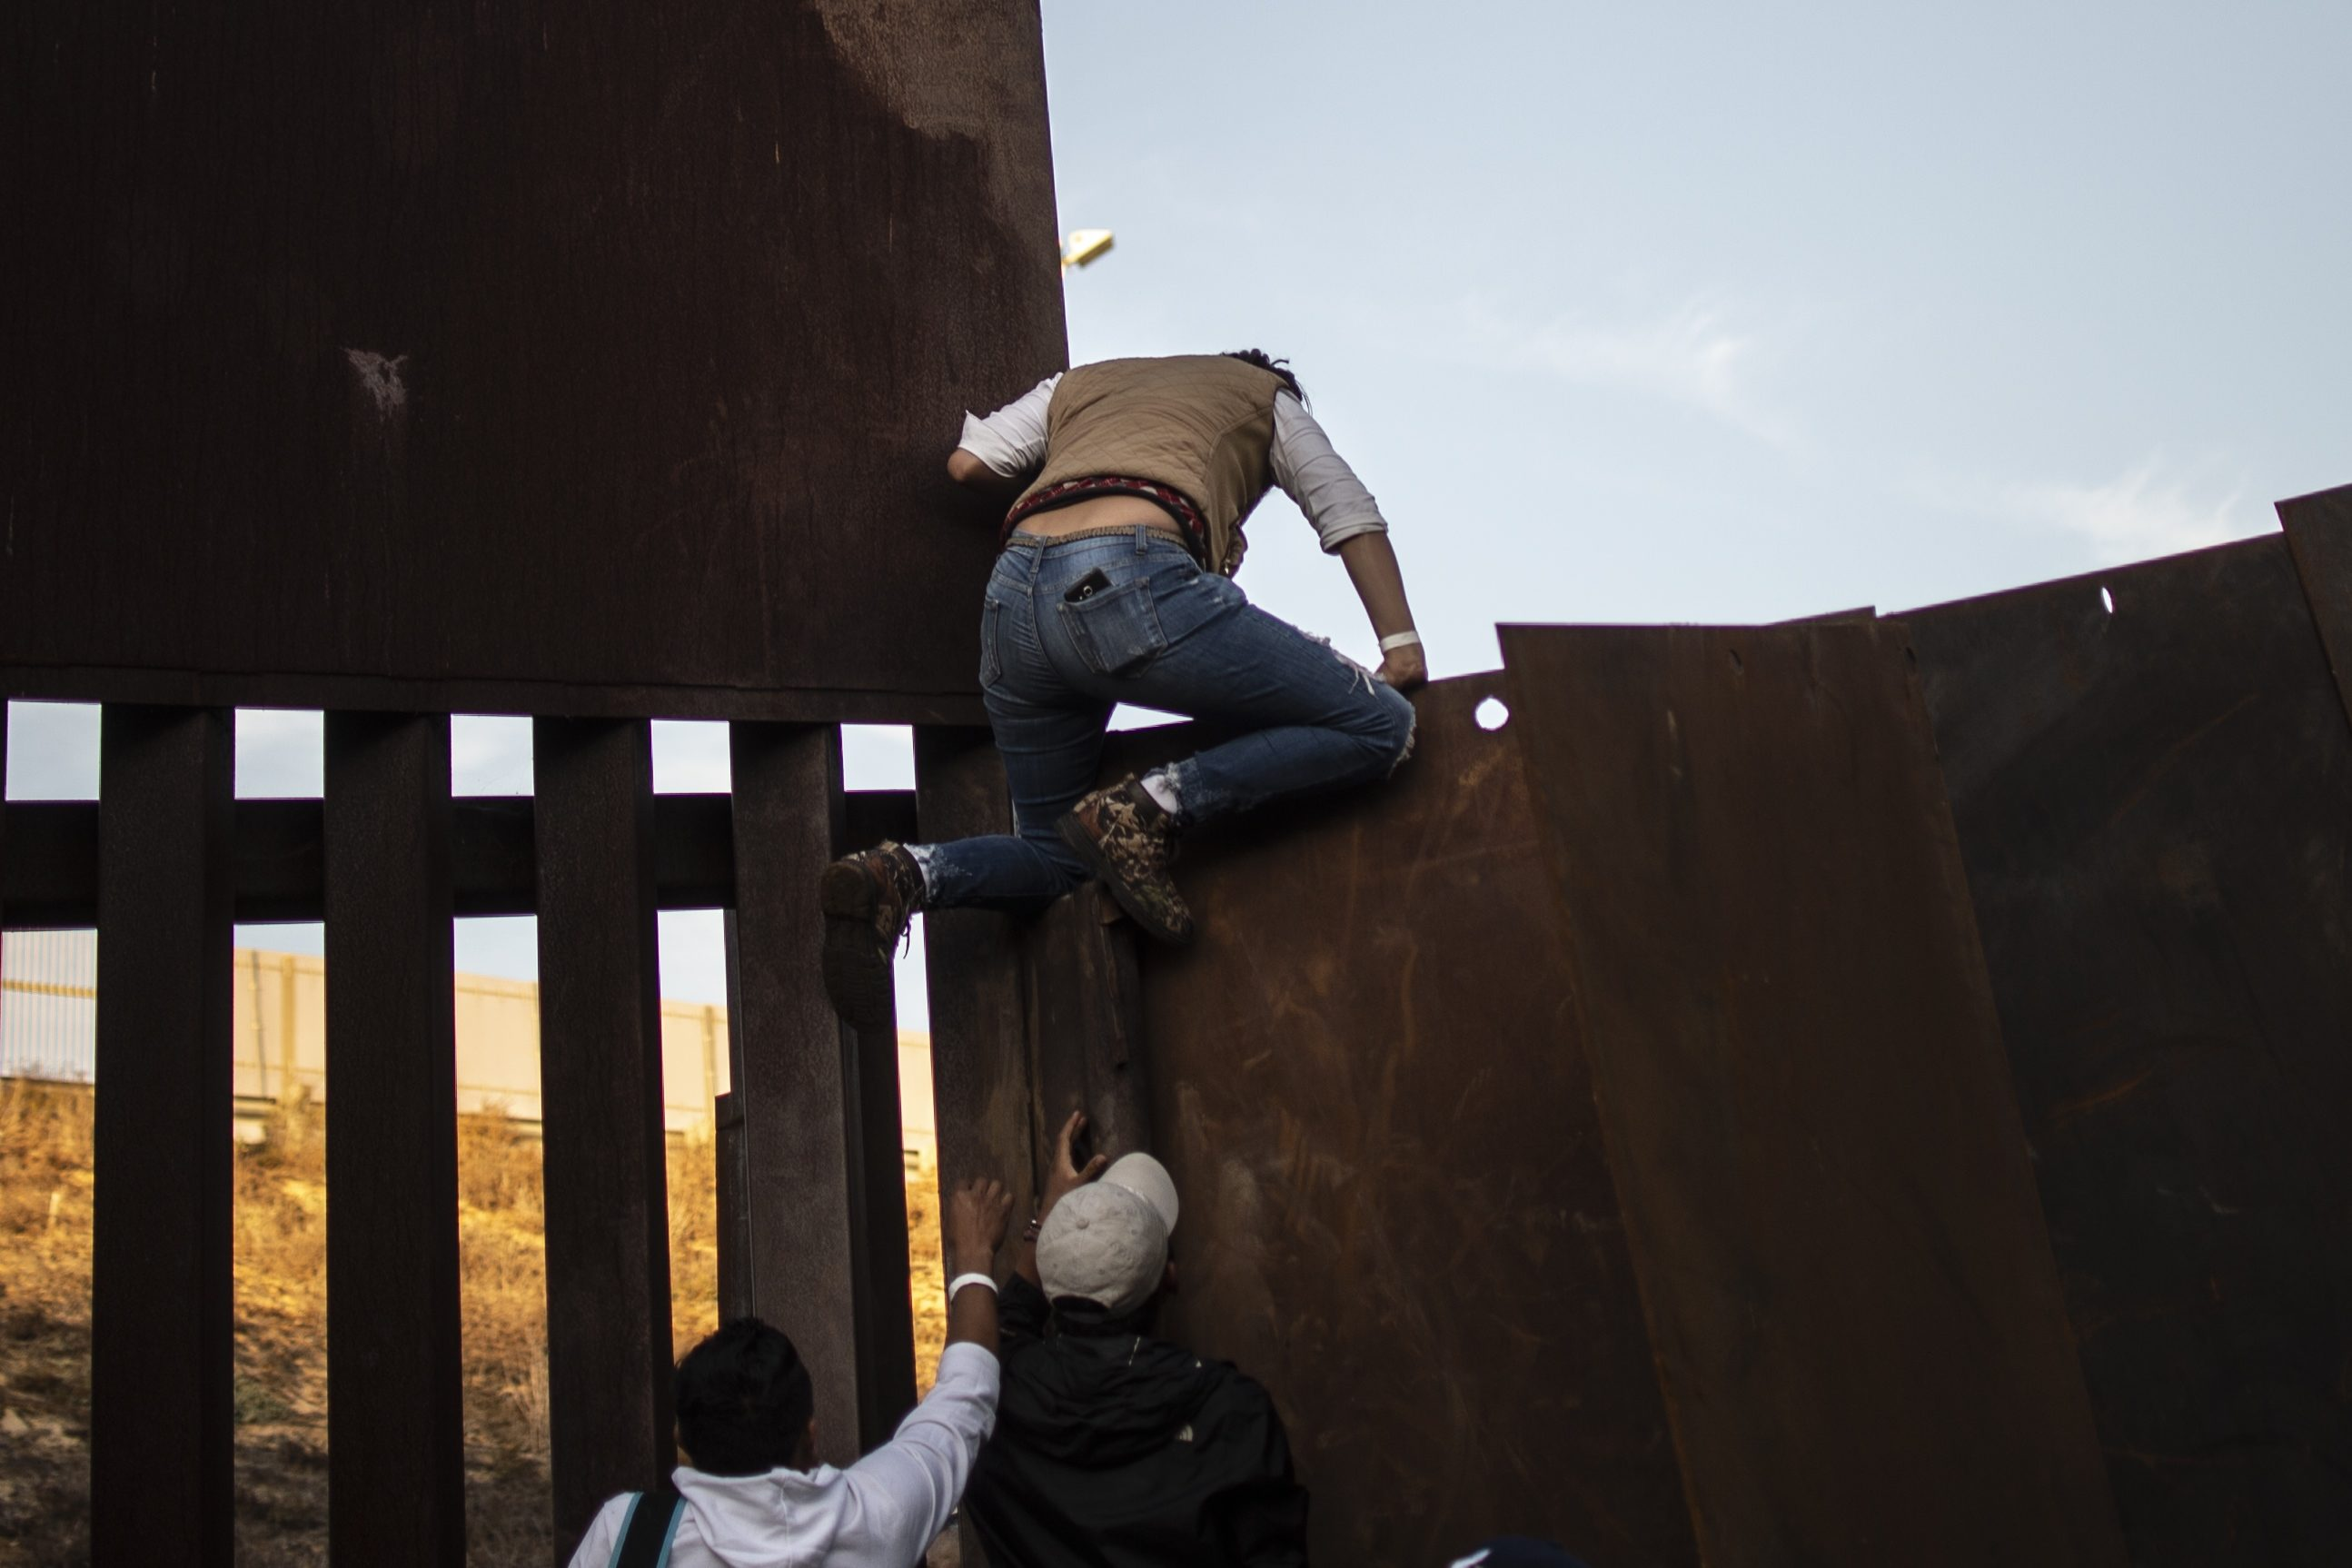 Central American migrants who have been travelling in a caravan hoping to get to the United States, climb the metal barrier separating Mexico and the US, in Playas de Tijuana, Mexico on December 2, 2018. (Photo credit should read PEDRO PARDO/AFP/Getty Images)